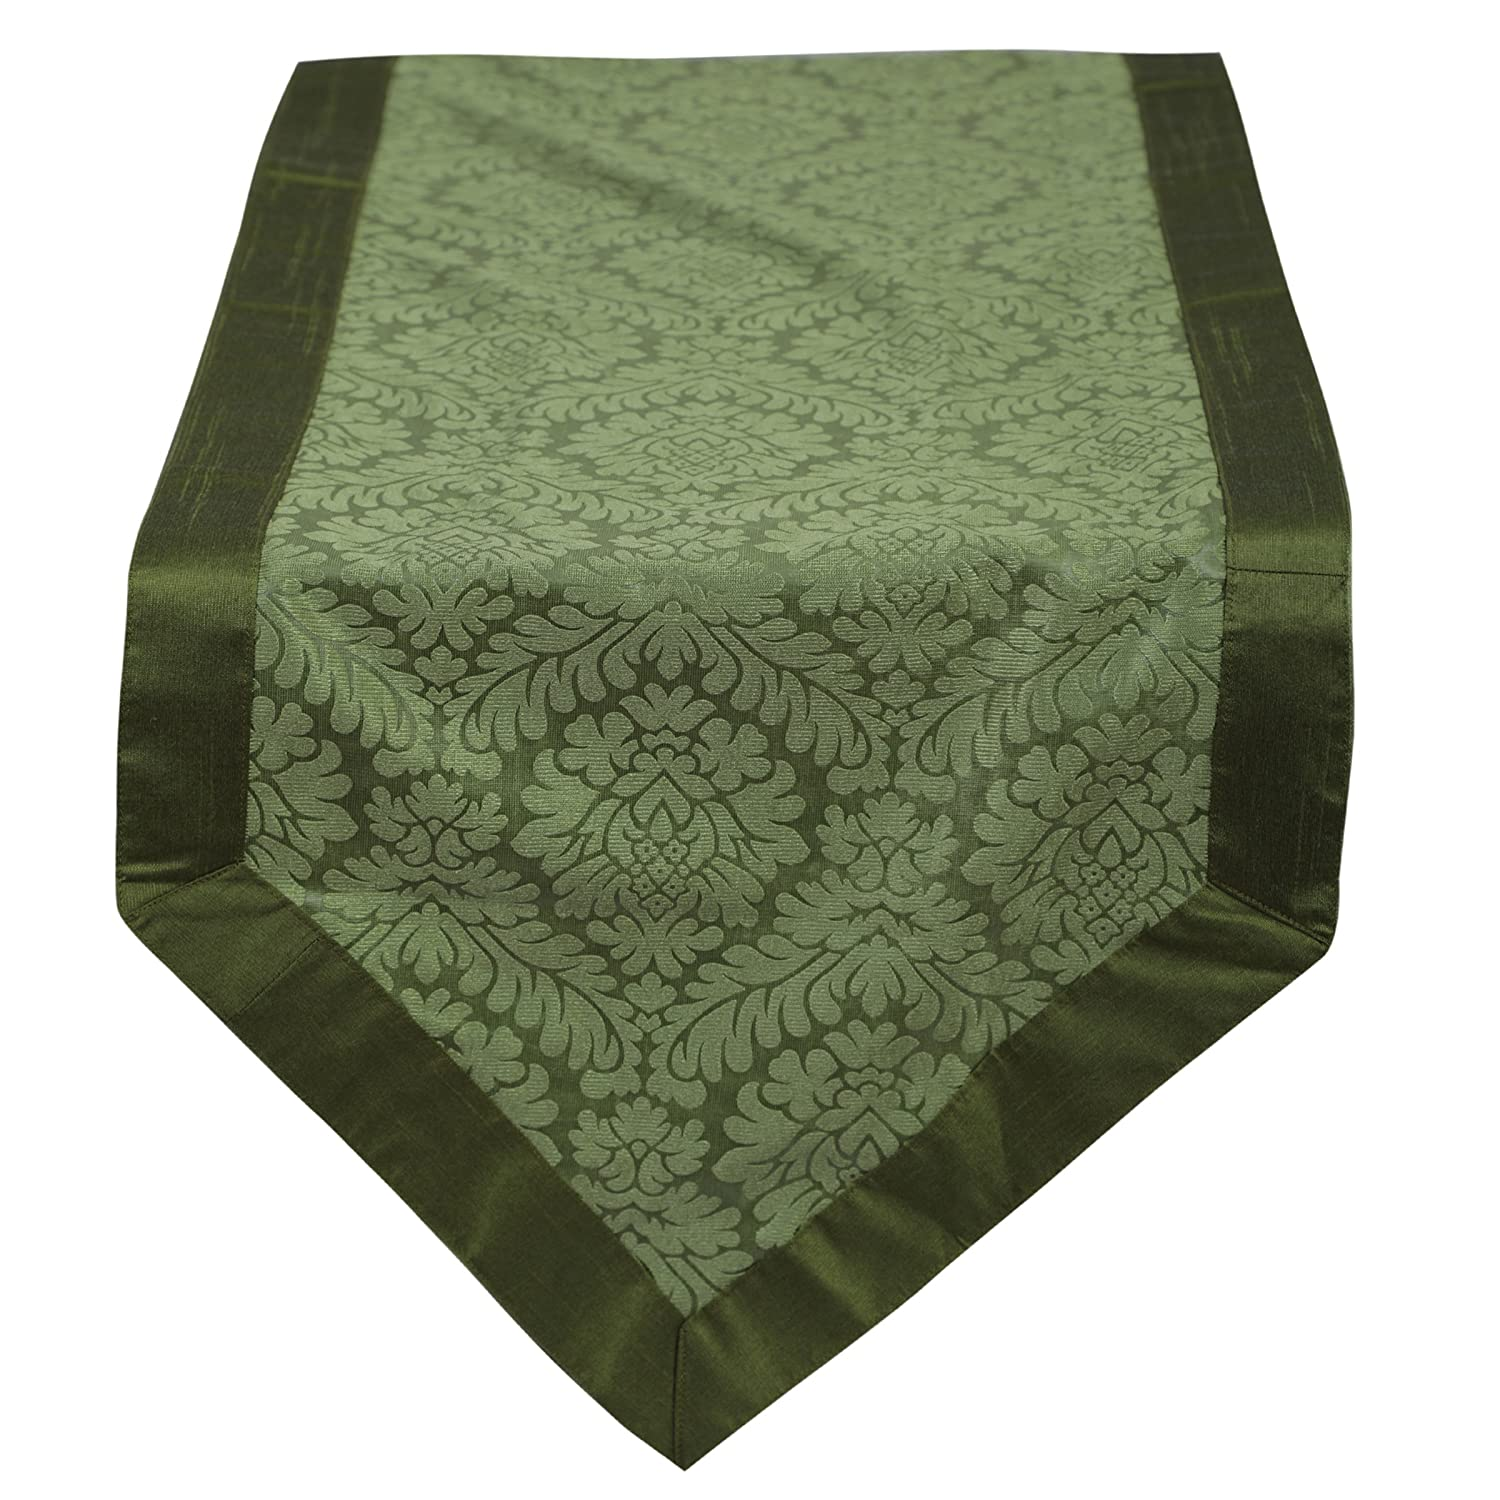 The White Petals Green Table Runner 14x48 inch Handmade /& Unique